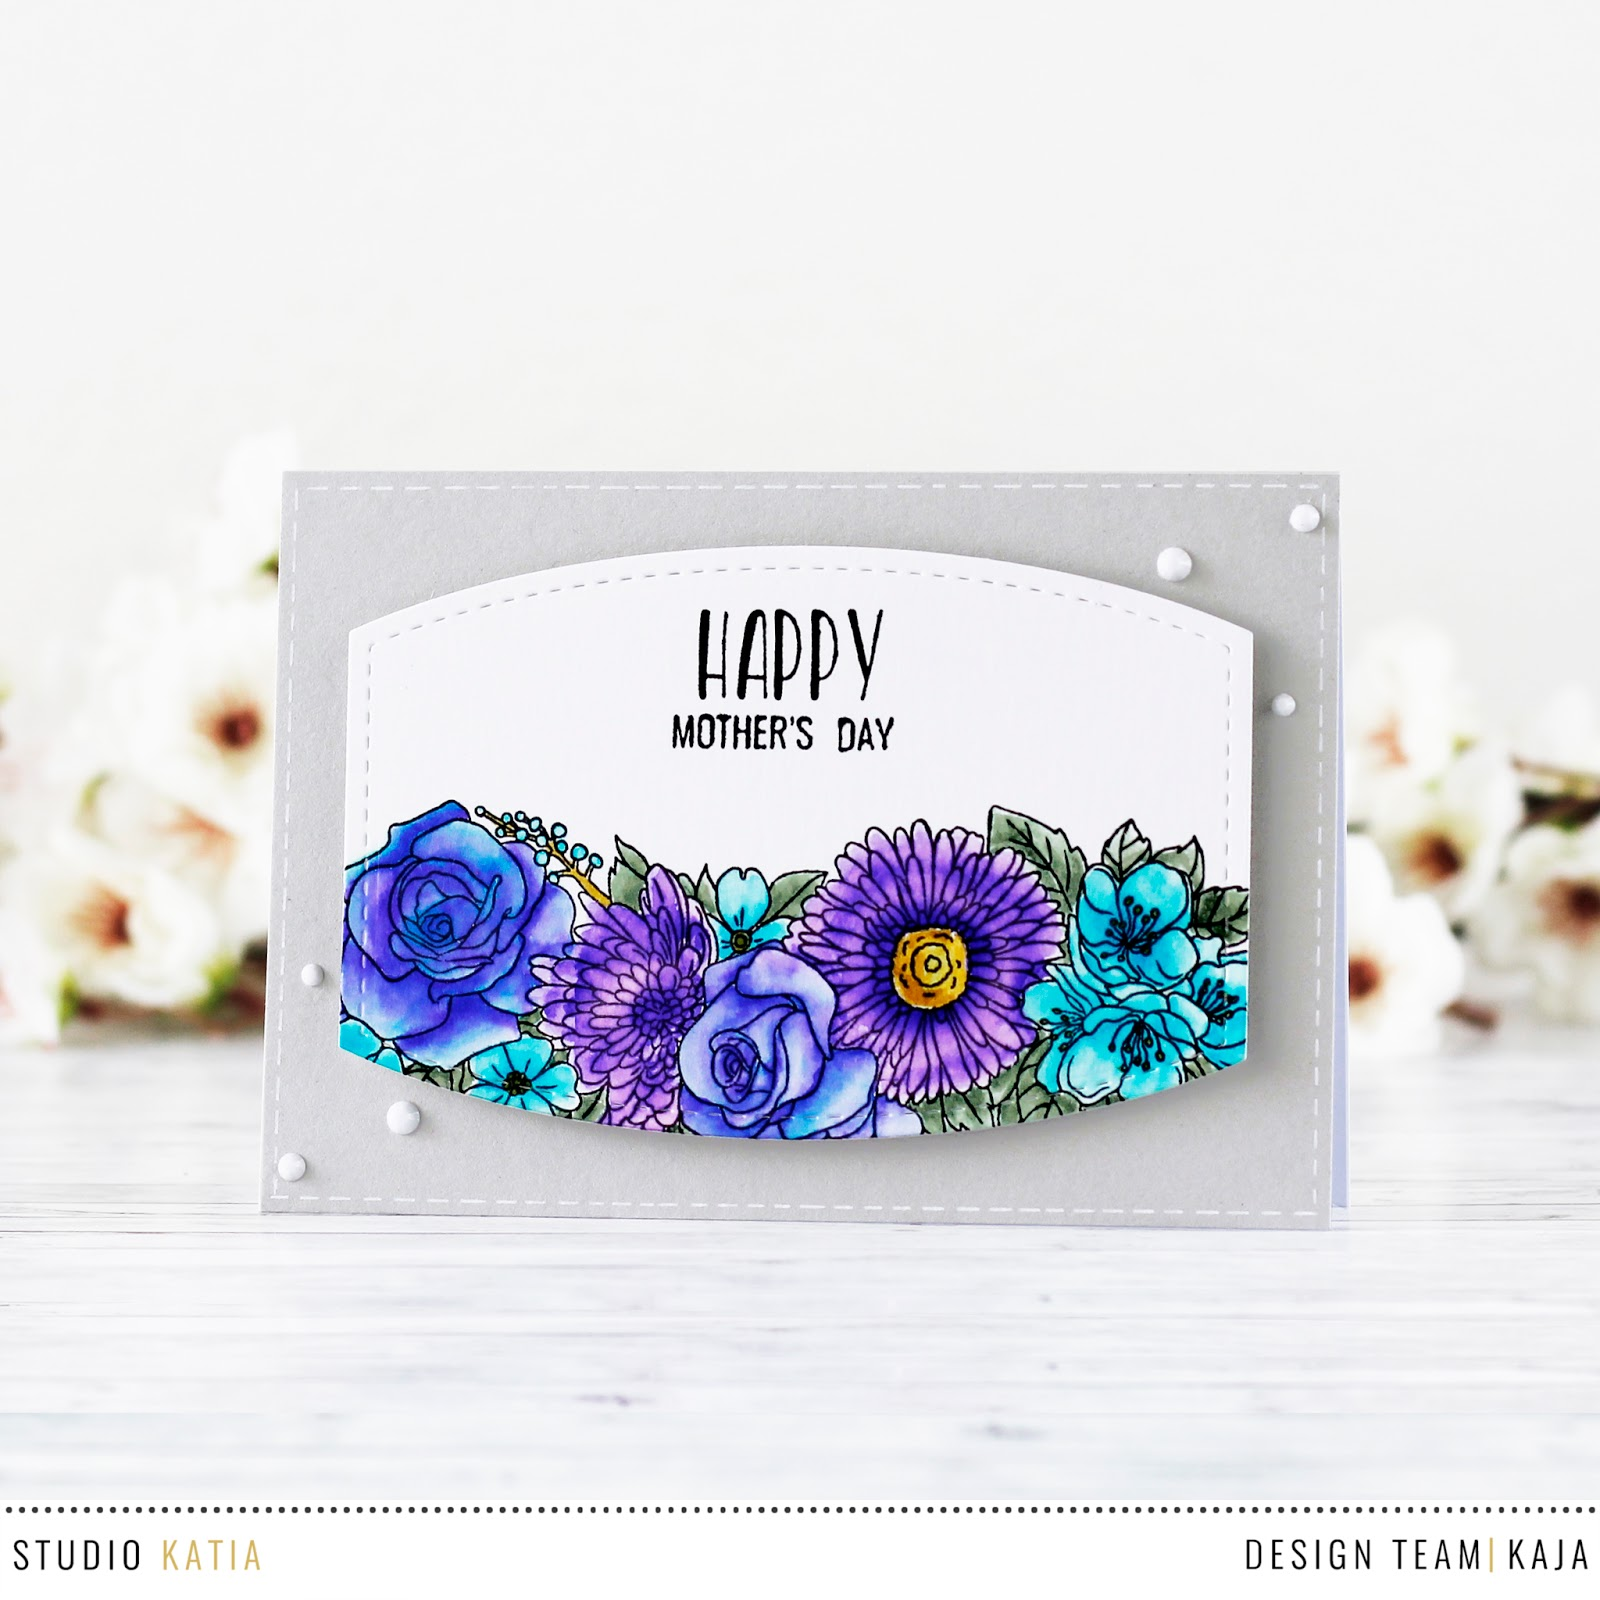 Mother's day card | STUDIO KATIA